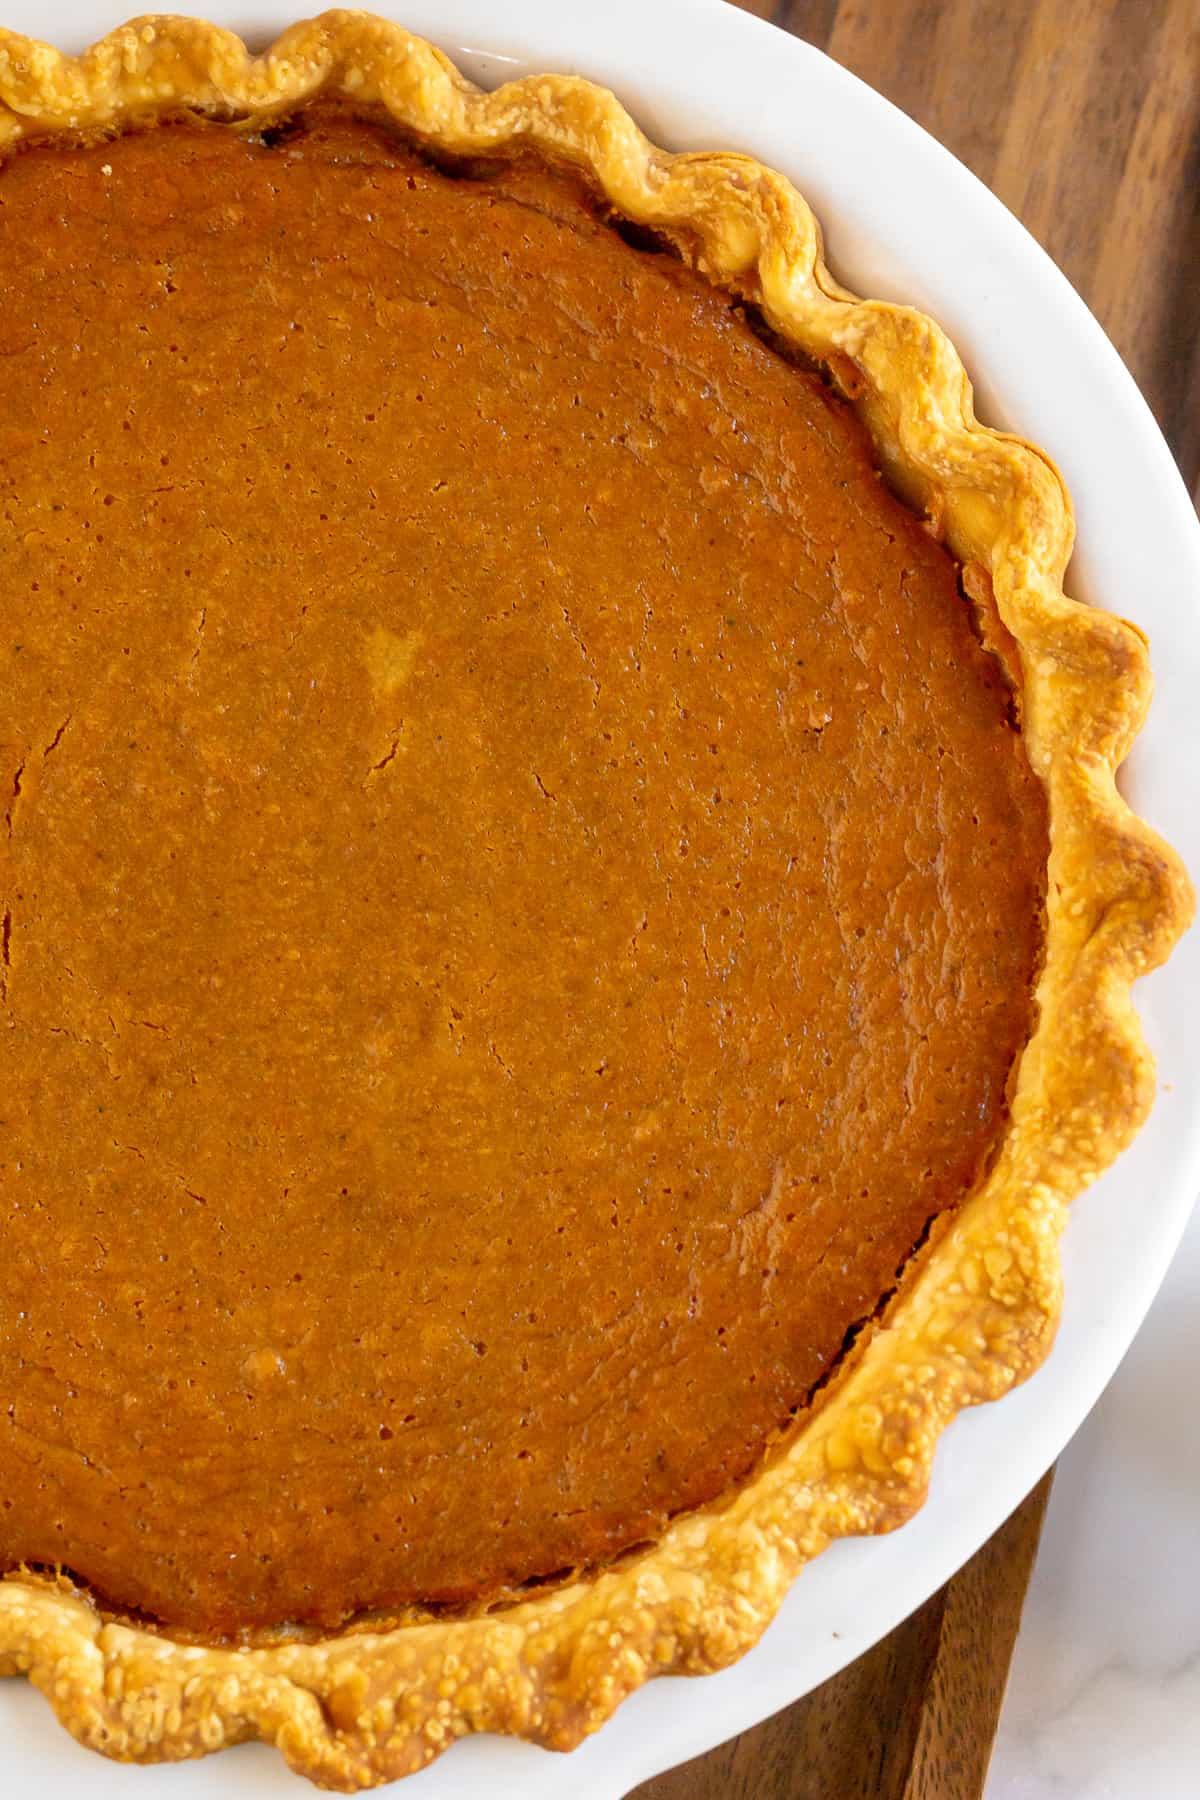 A close up of a sweet potato pie in a pie dish.